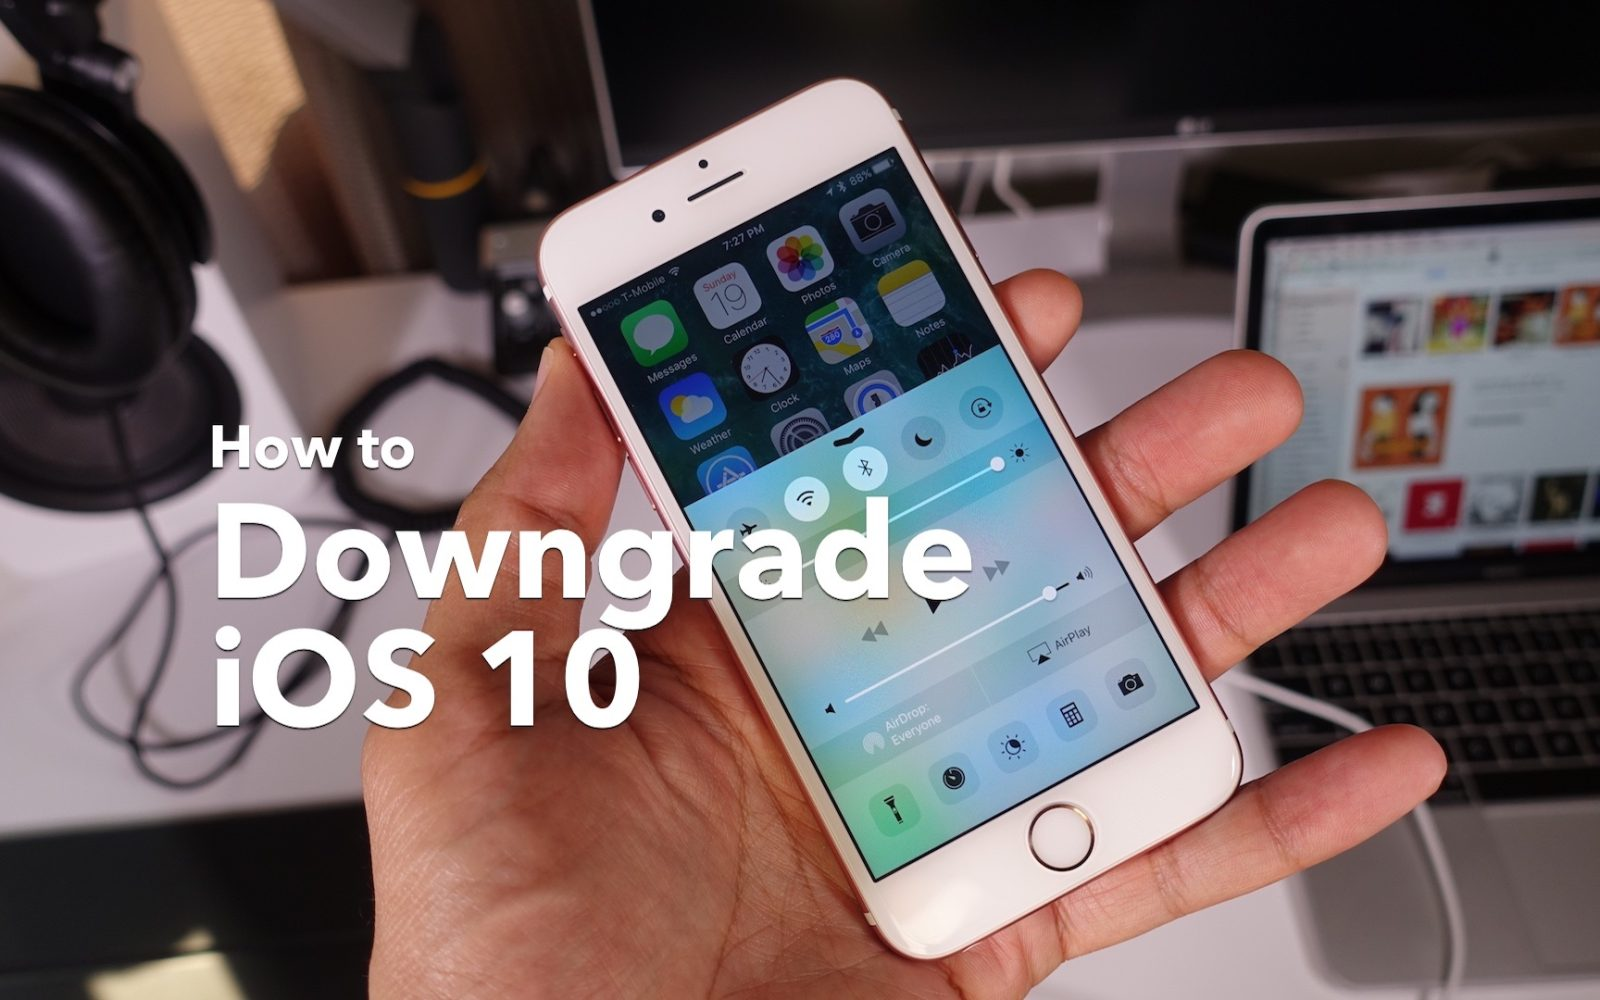 Considering an iOS 10 downgrade? Here are a few things to